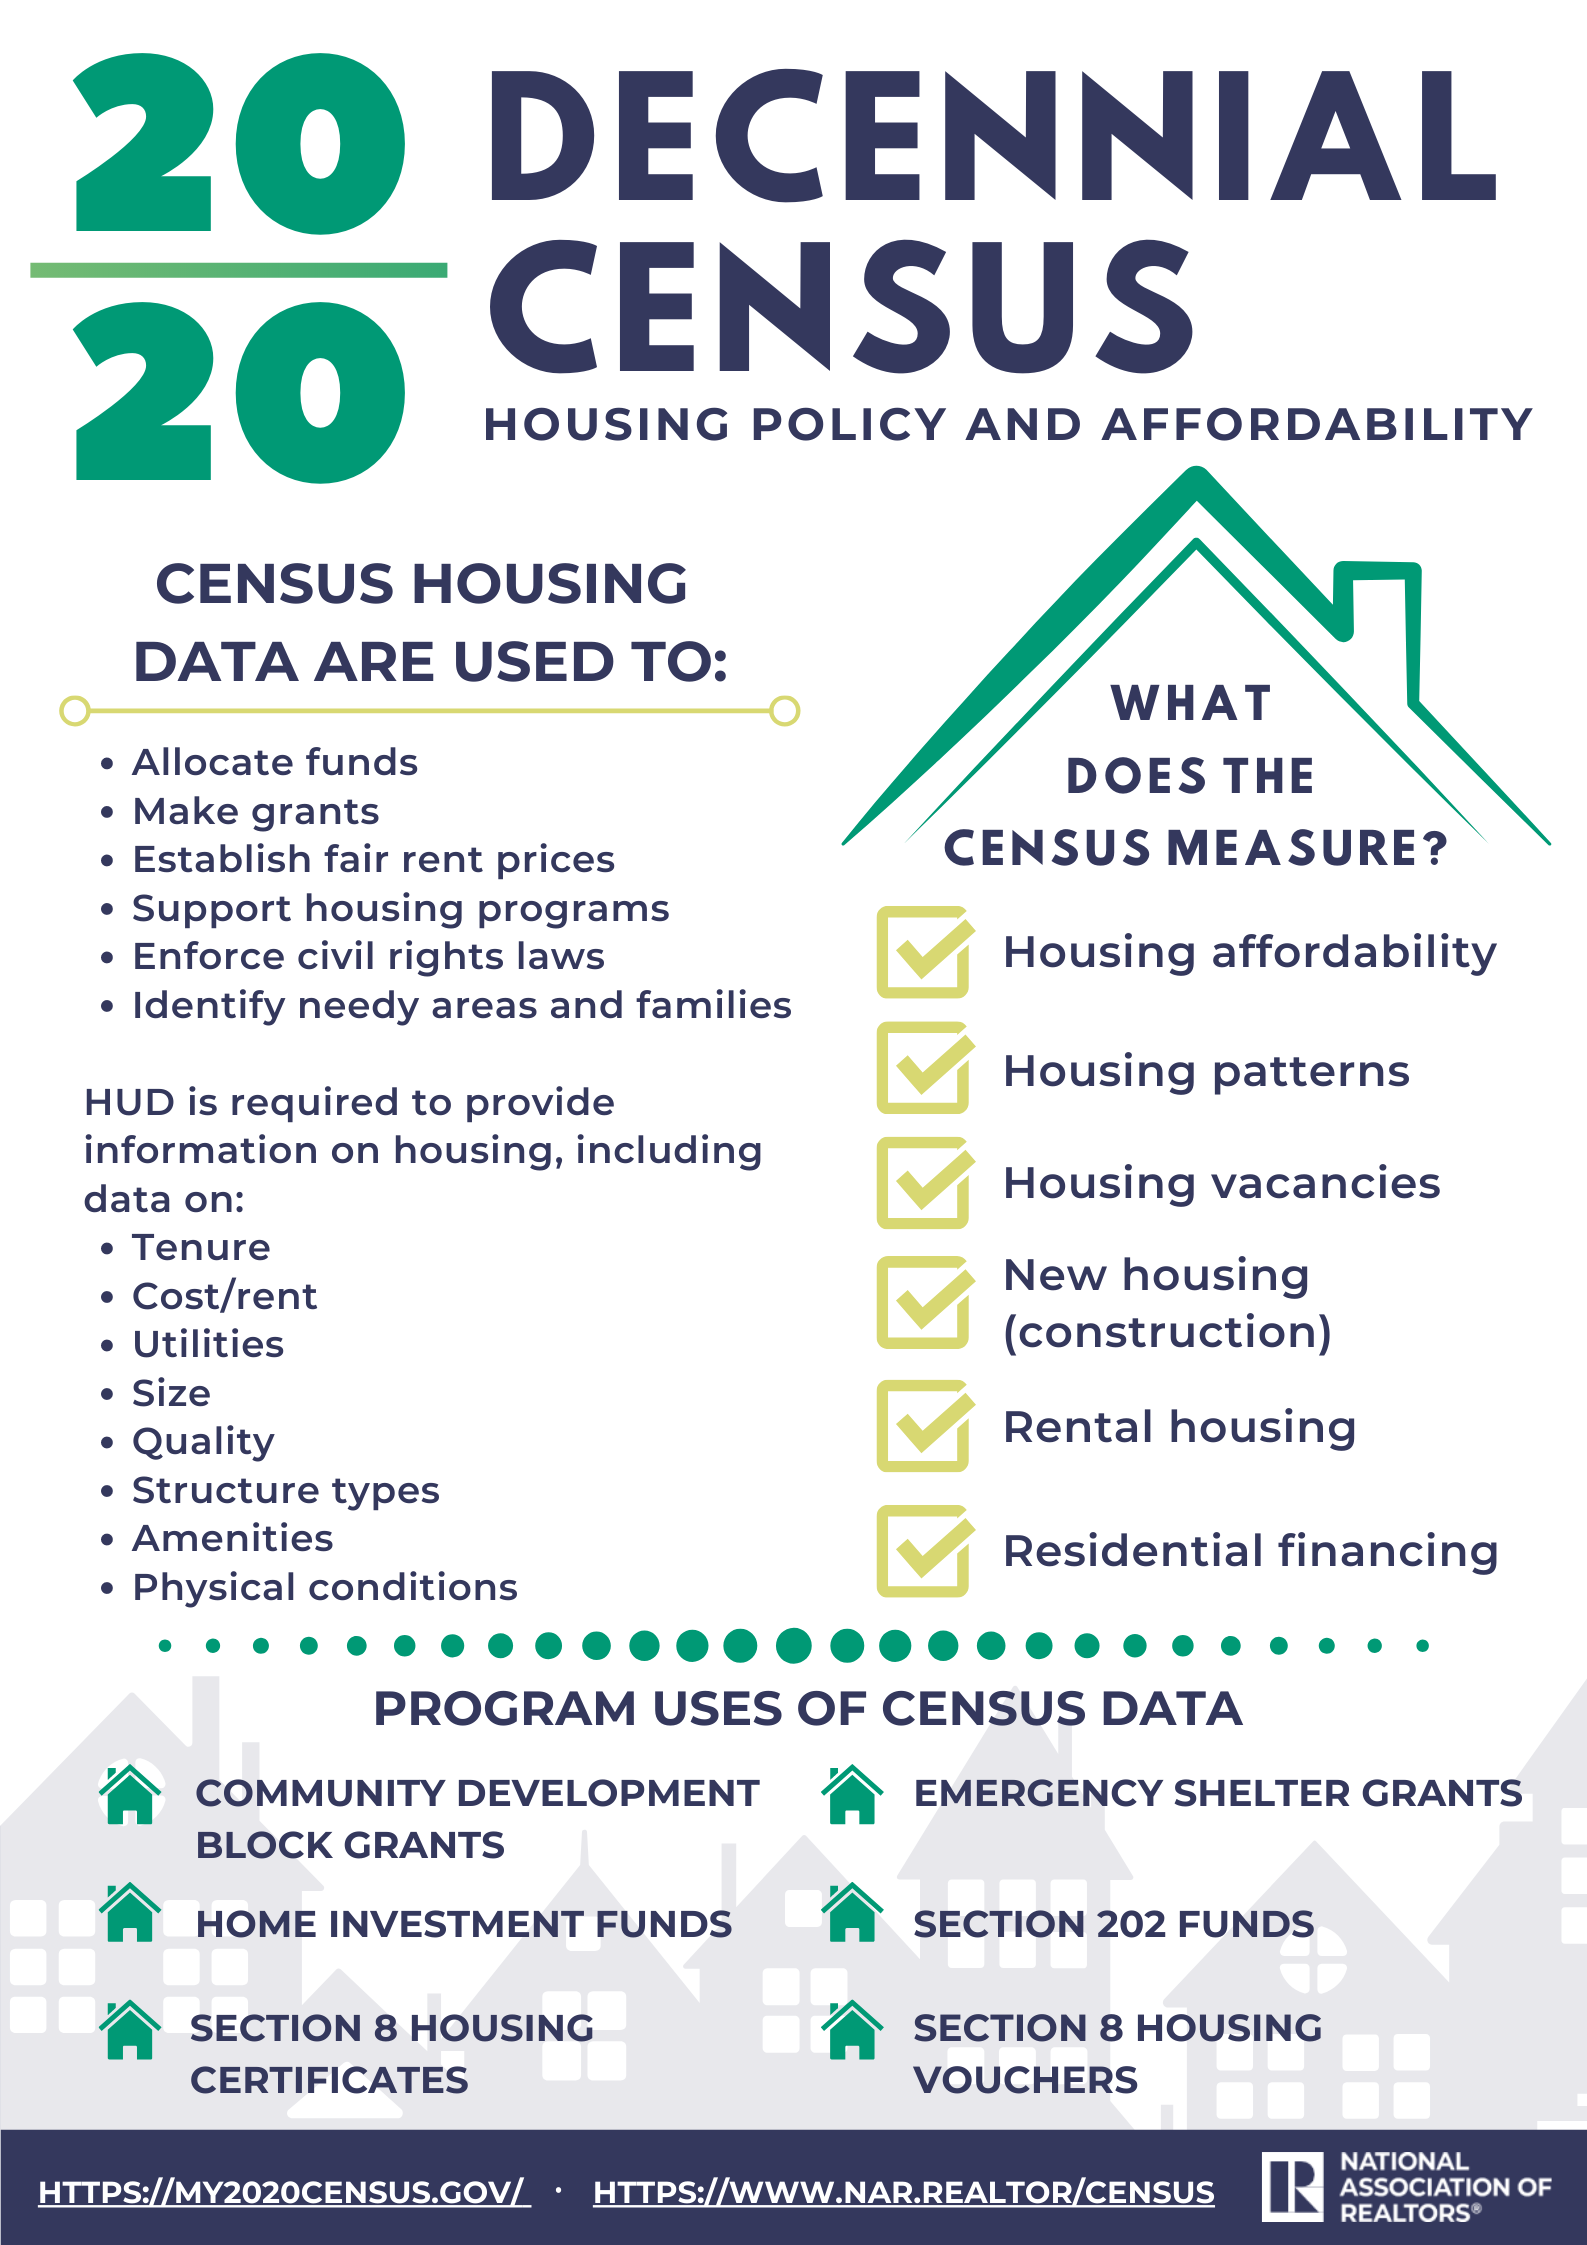 2020 NAR Census and Housing Infographic 1587w 2245h